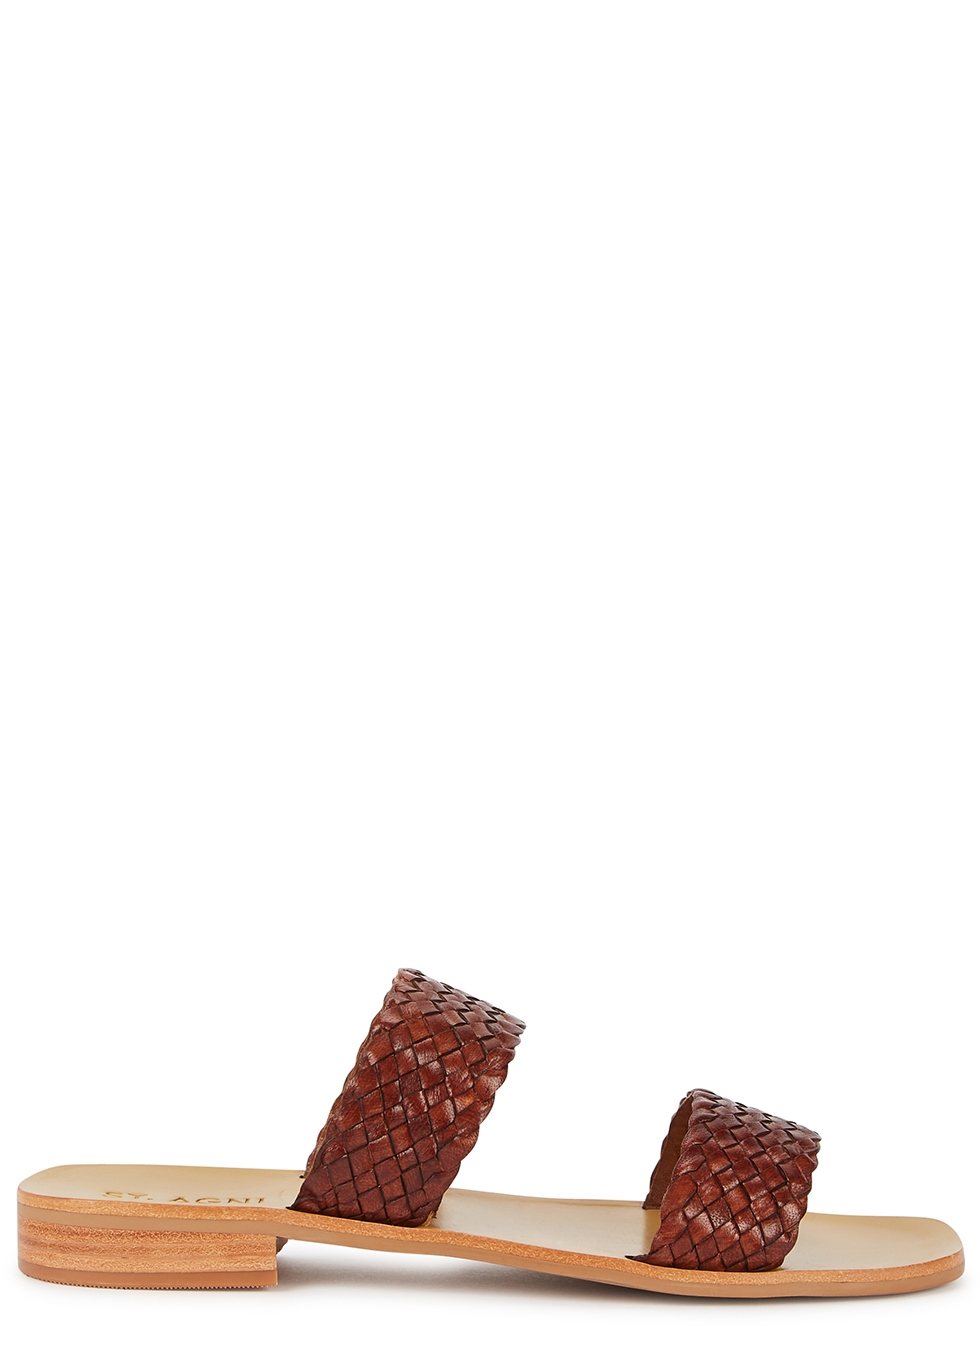 Piers 40 brown woven leather sandals